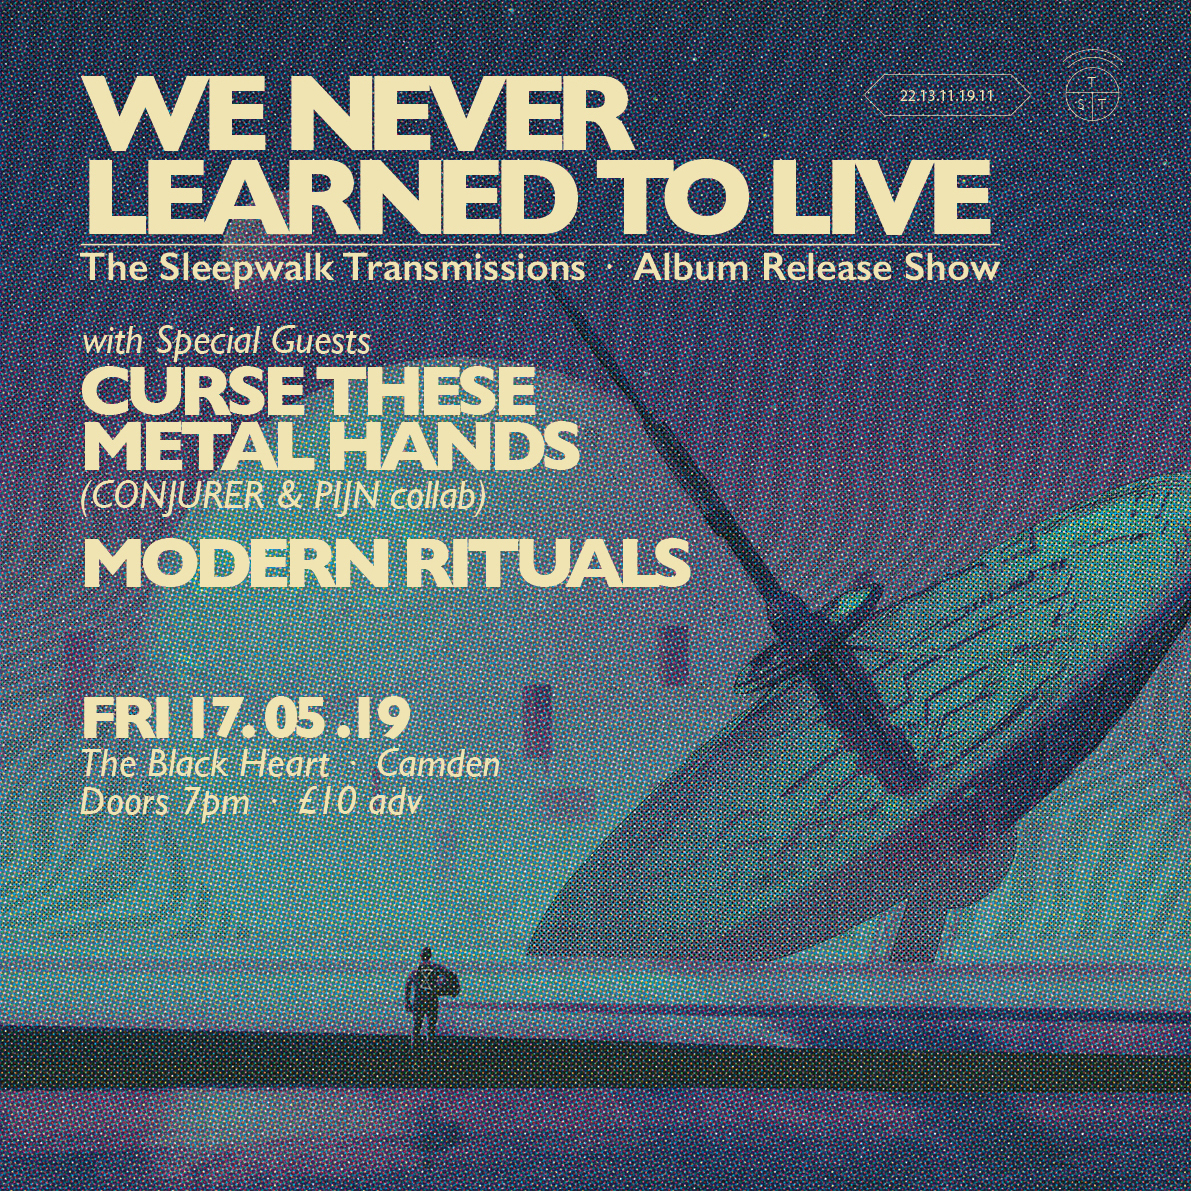 17/05/19 - We Never Learned To Live album release show @ The Black Heart, Camden E-TICKET